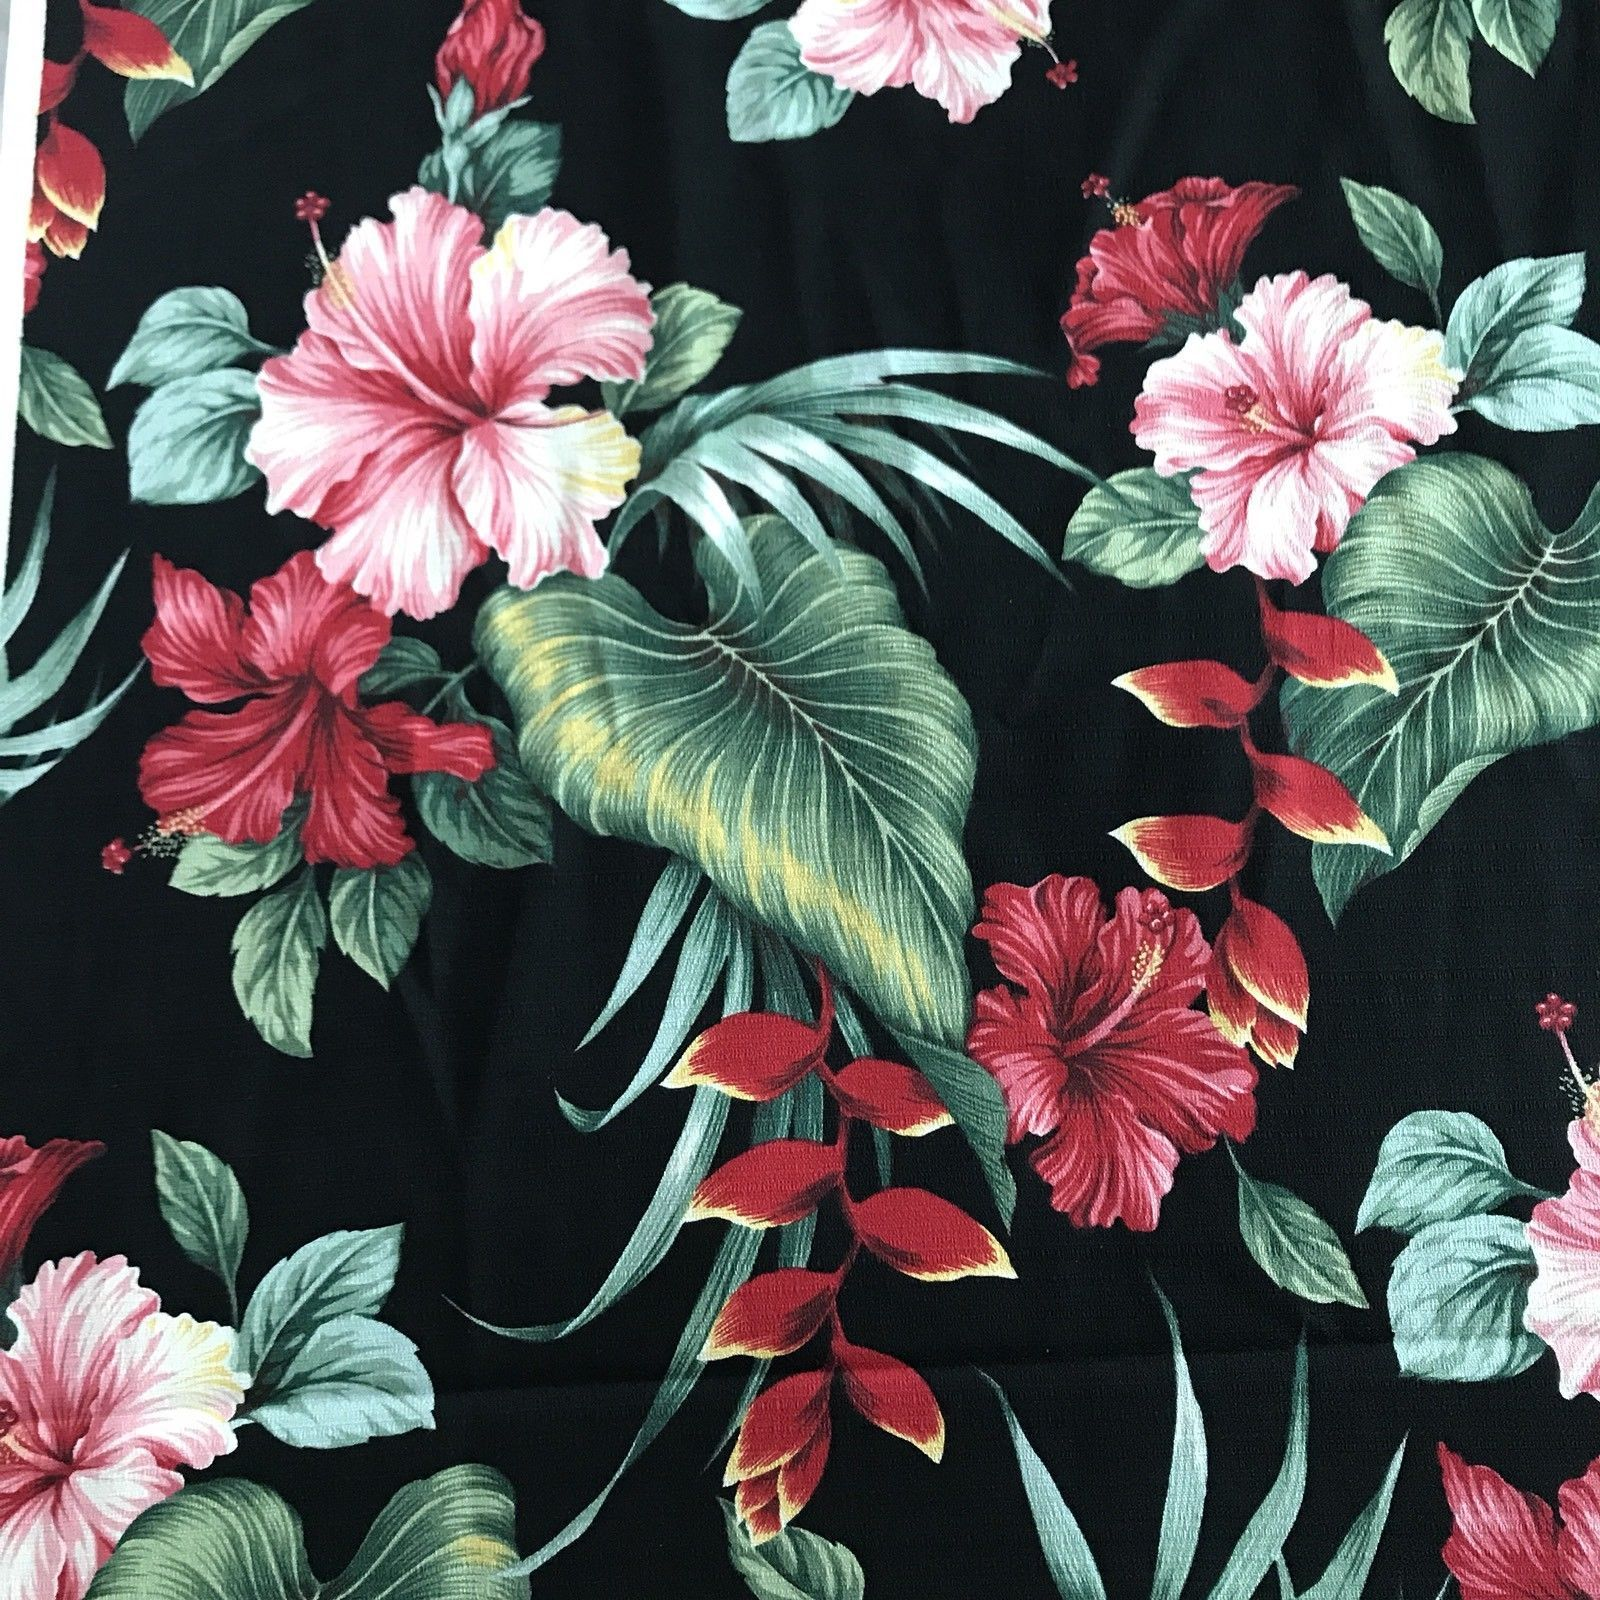 ff44add1daa5 Hawaiian Print Barkcloth Dobby Cotton Pink Red Hibiscus Black Tropical  Fabric | eBay